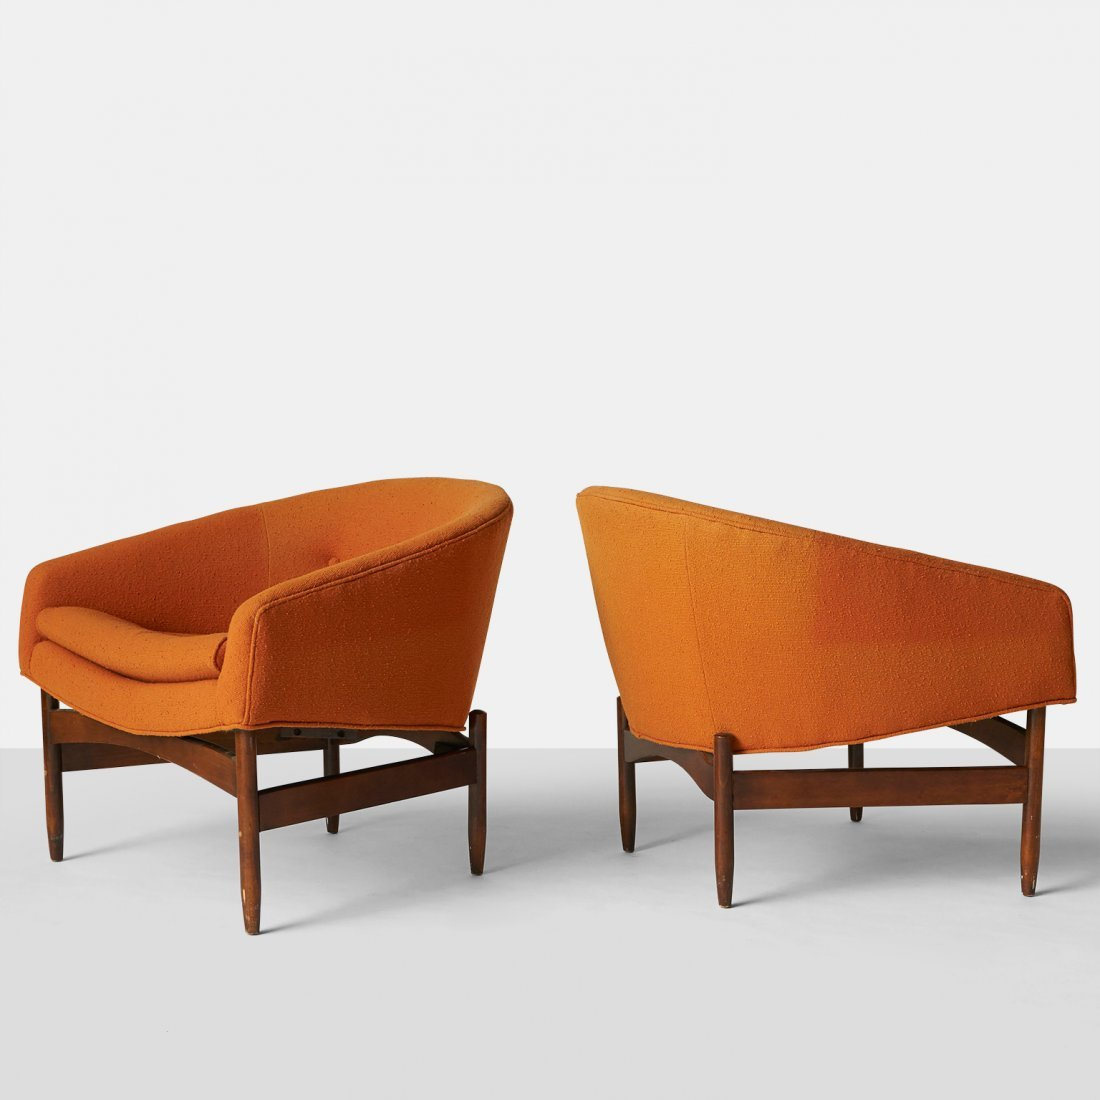 Lawrence Peabody, Pair of Lounge Chairs for Selig